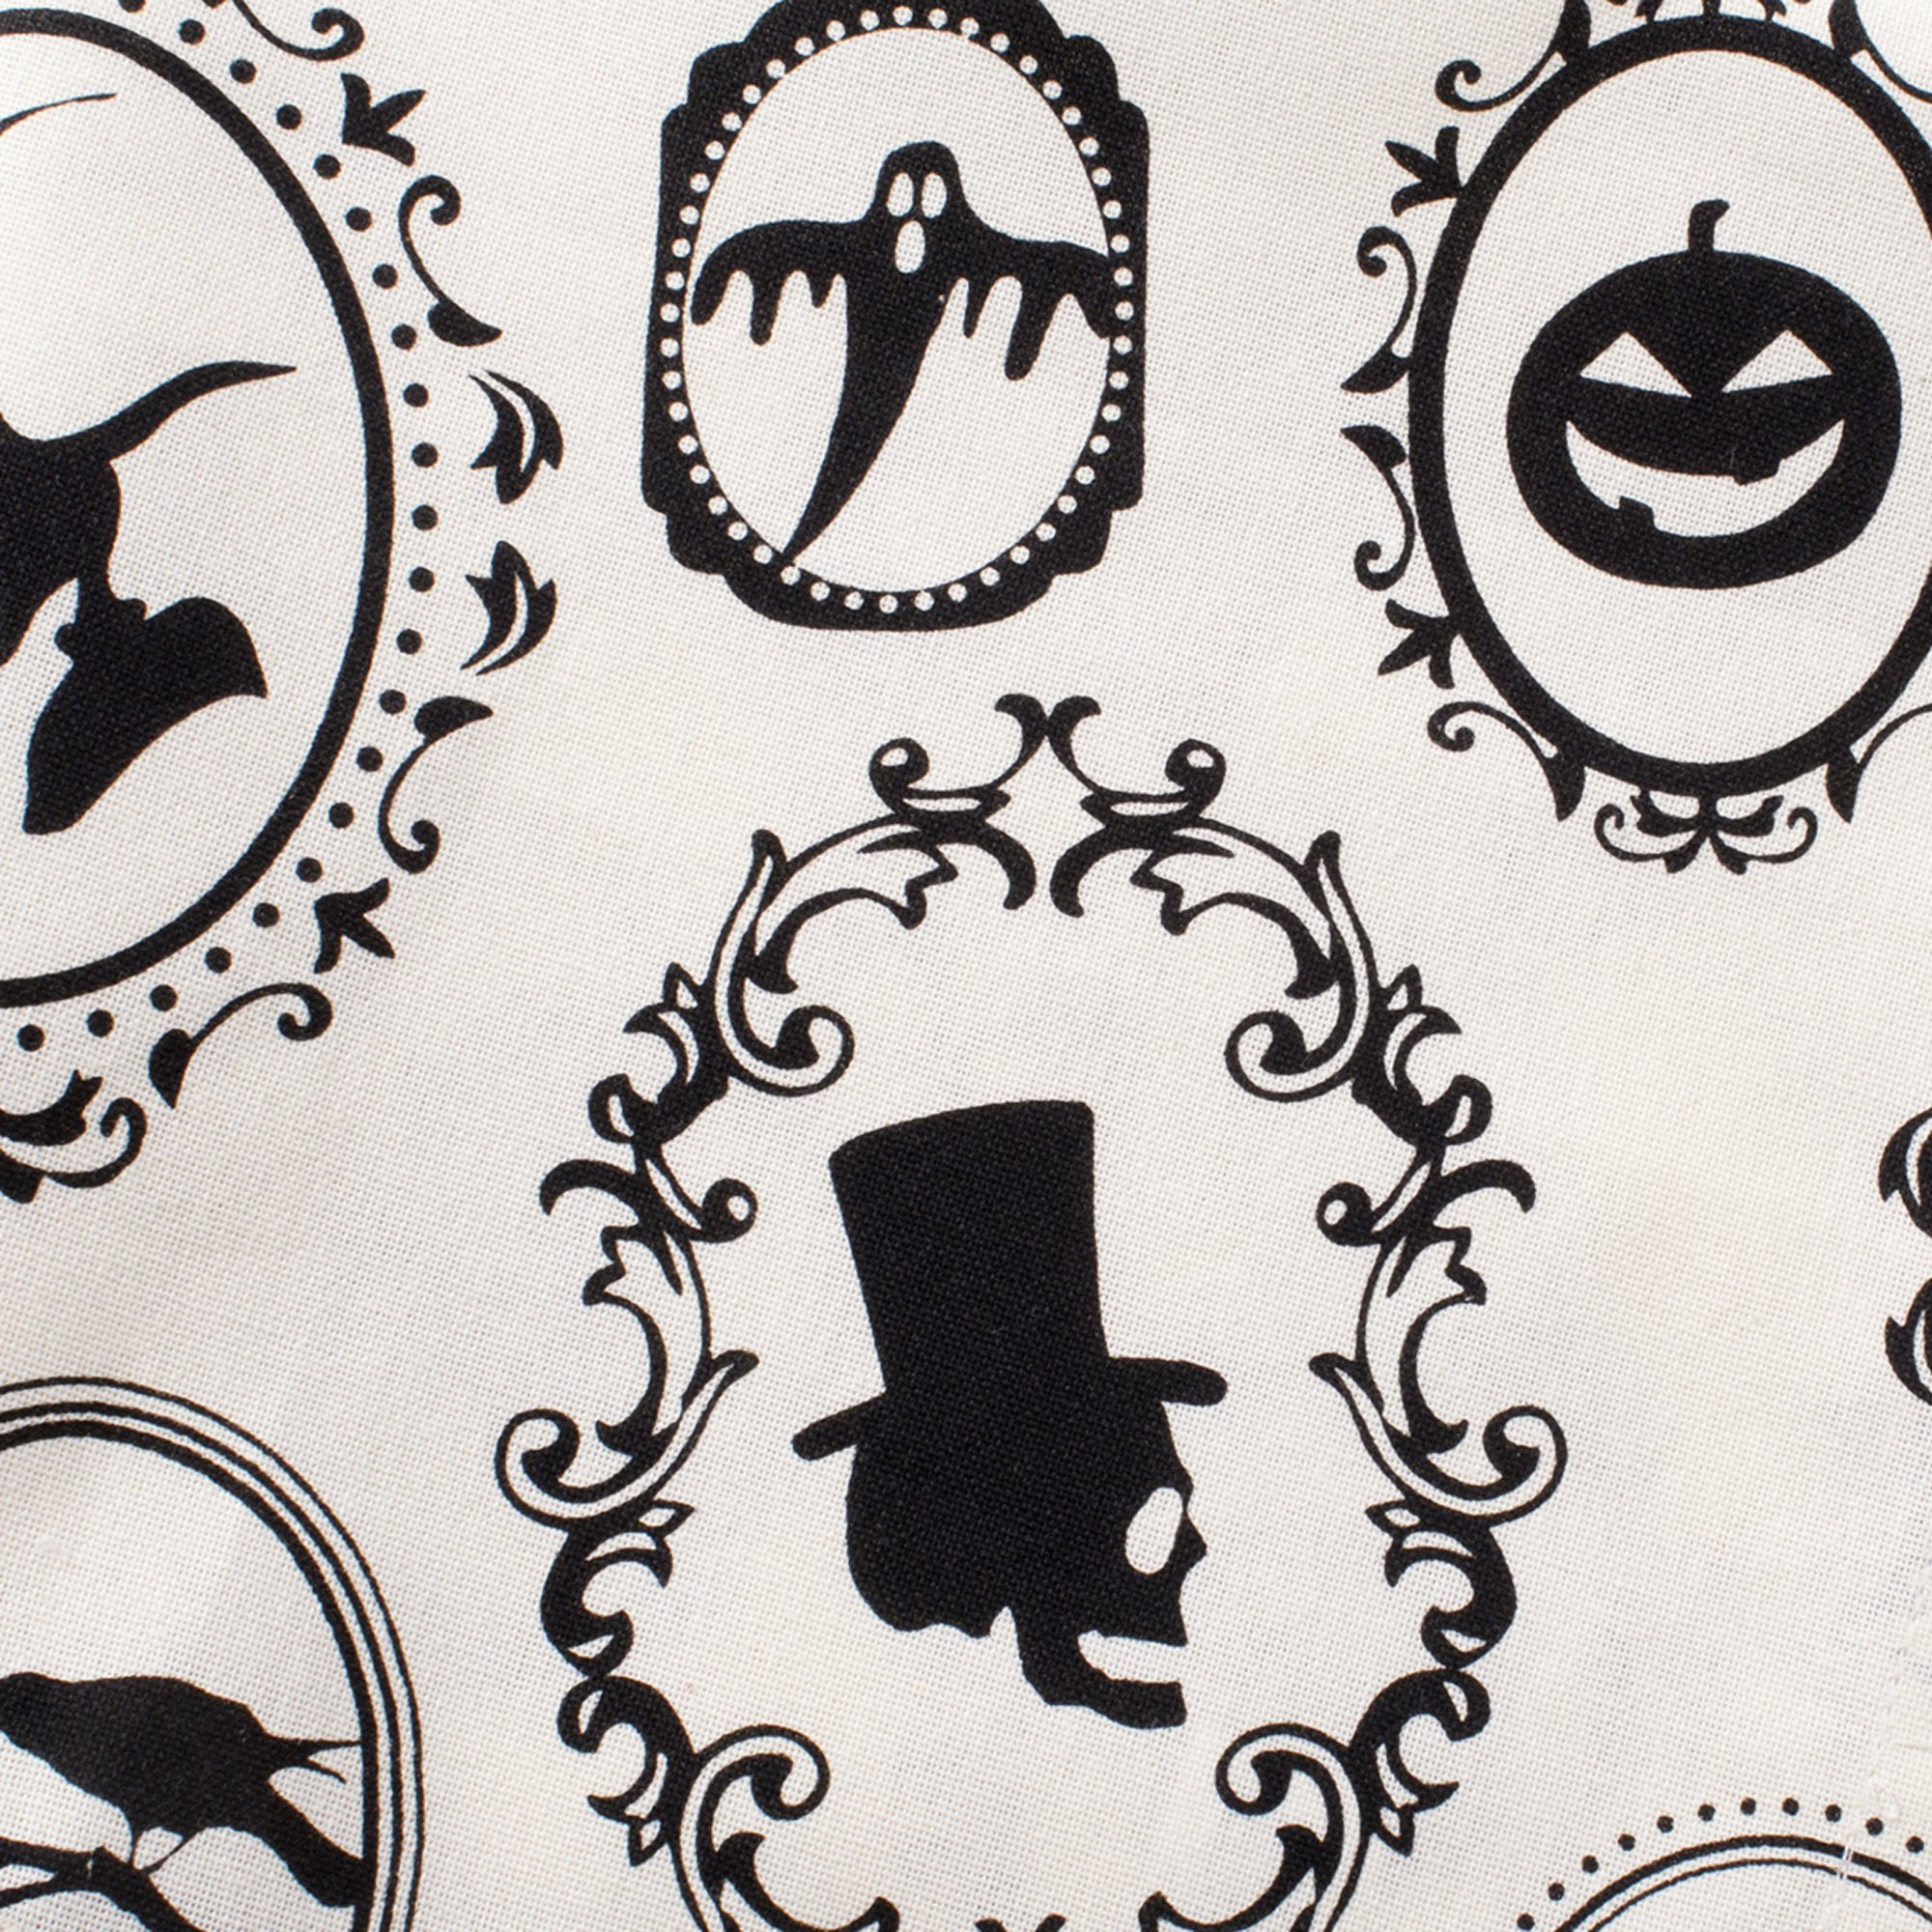 DII Oversized 20x20'' Cotton Napkin, Black & White Halloween Portrait - Perfect for Halloween, Dinner Parties and Scary Movie Nights by DII (Image #4)